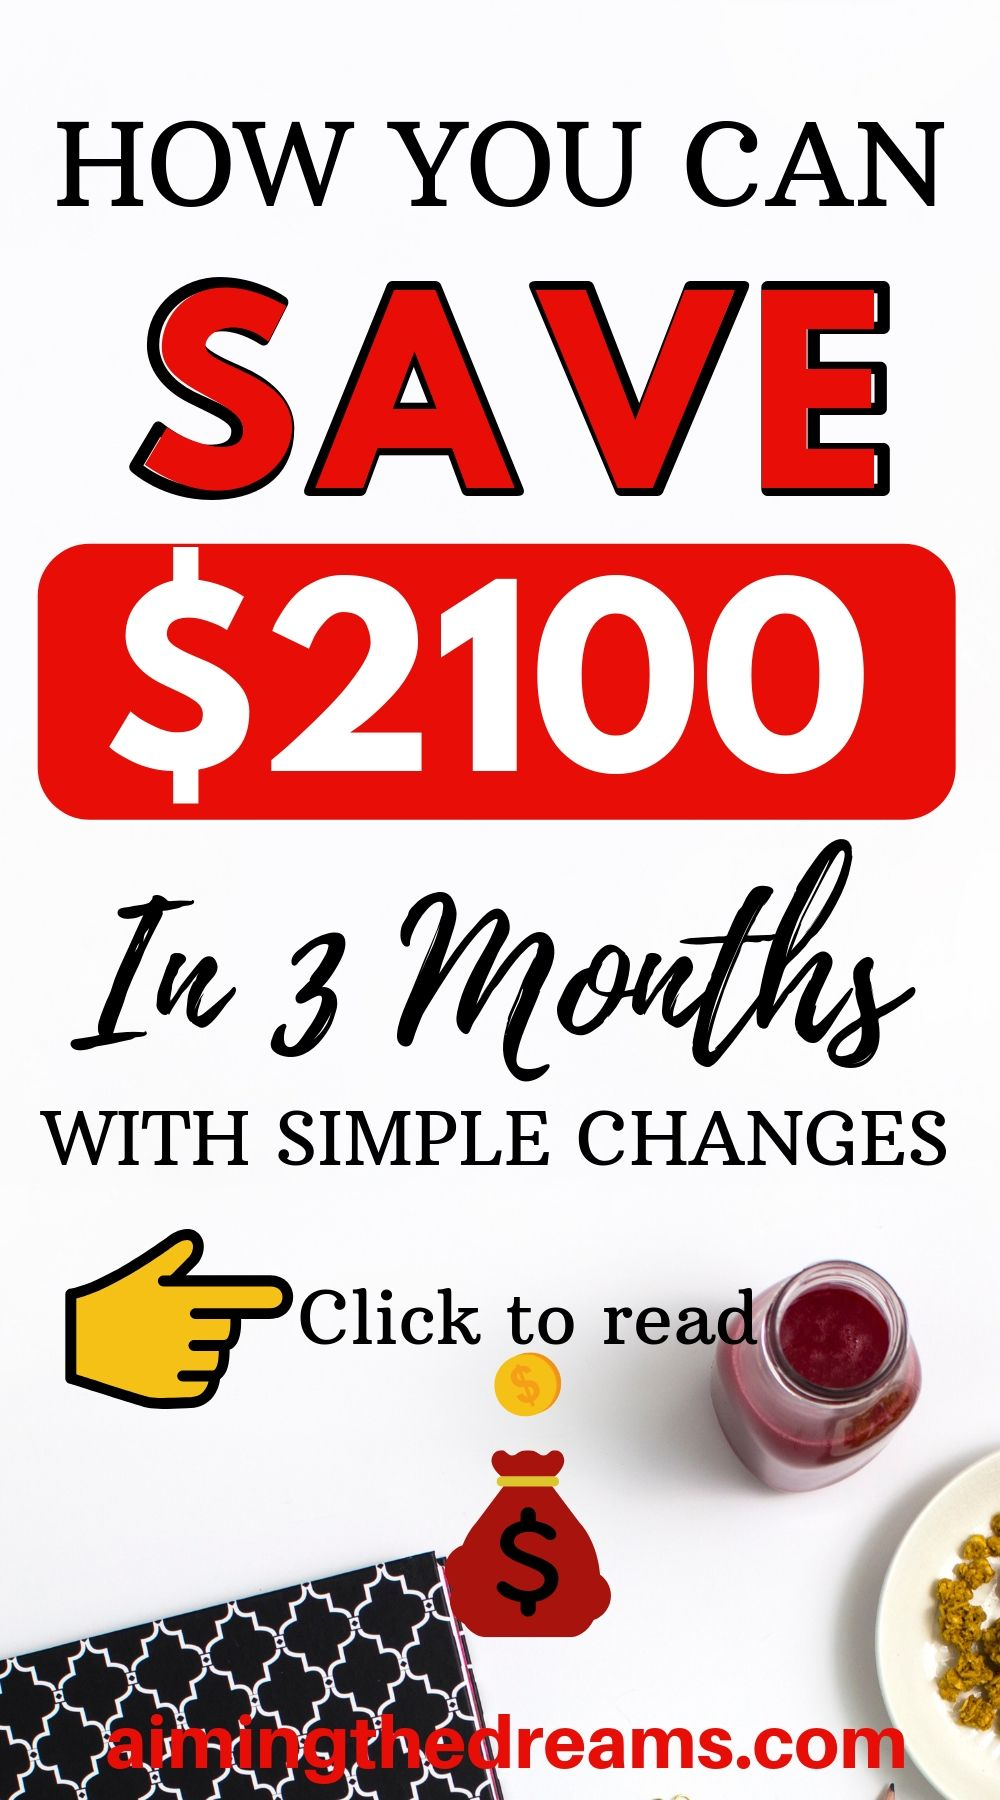 How you can save extra $2100 to grow wealth in 3 months time